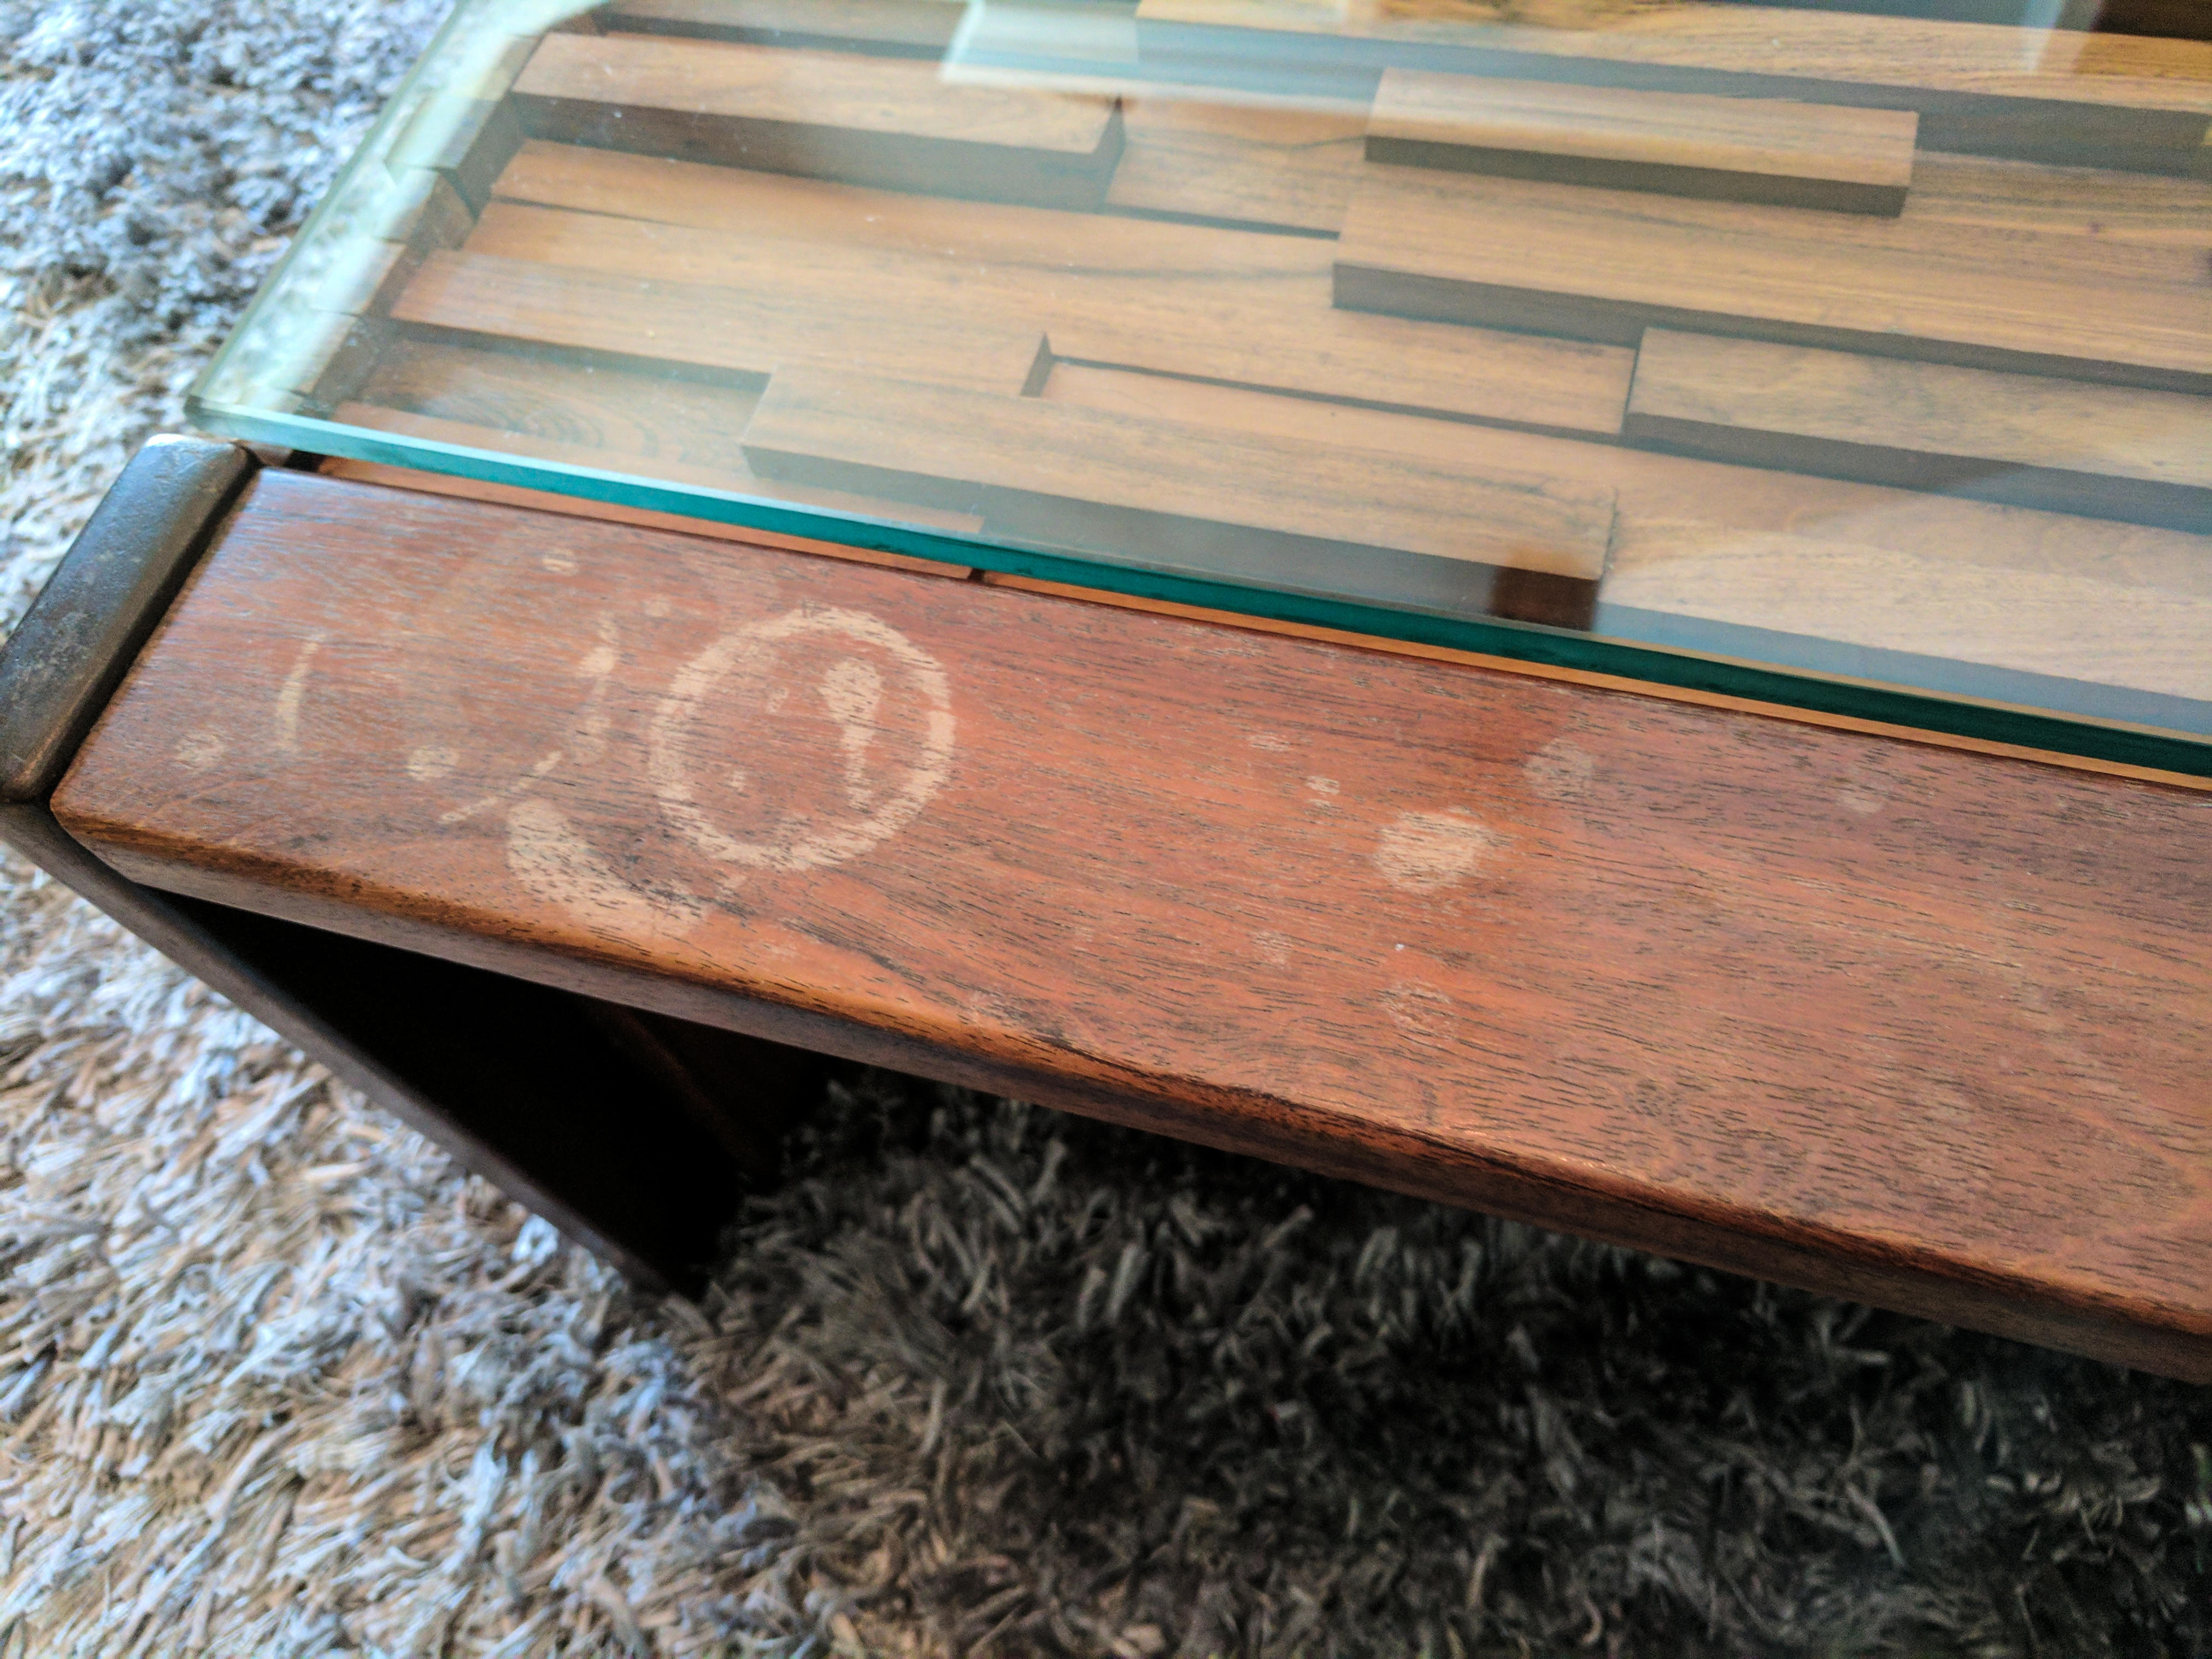 Remove Water Stains From Wood Furniture, How To Remove White Water Stains On Wood Furniture